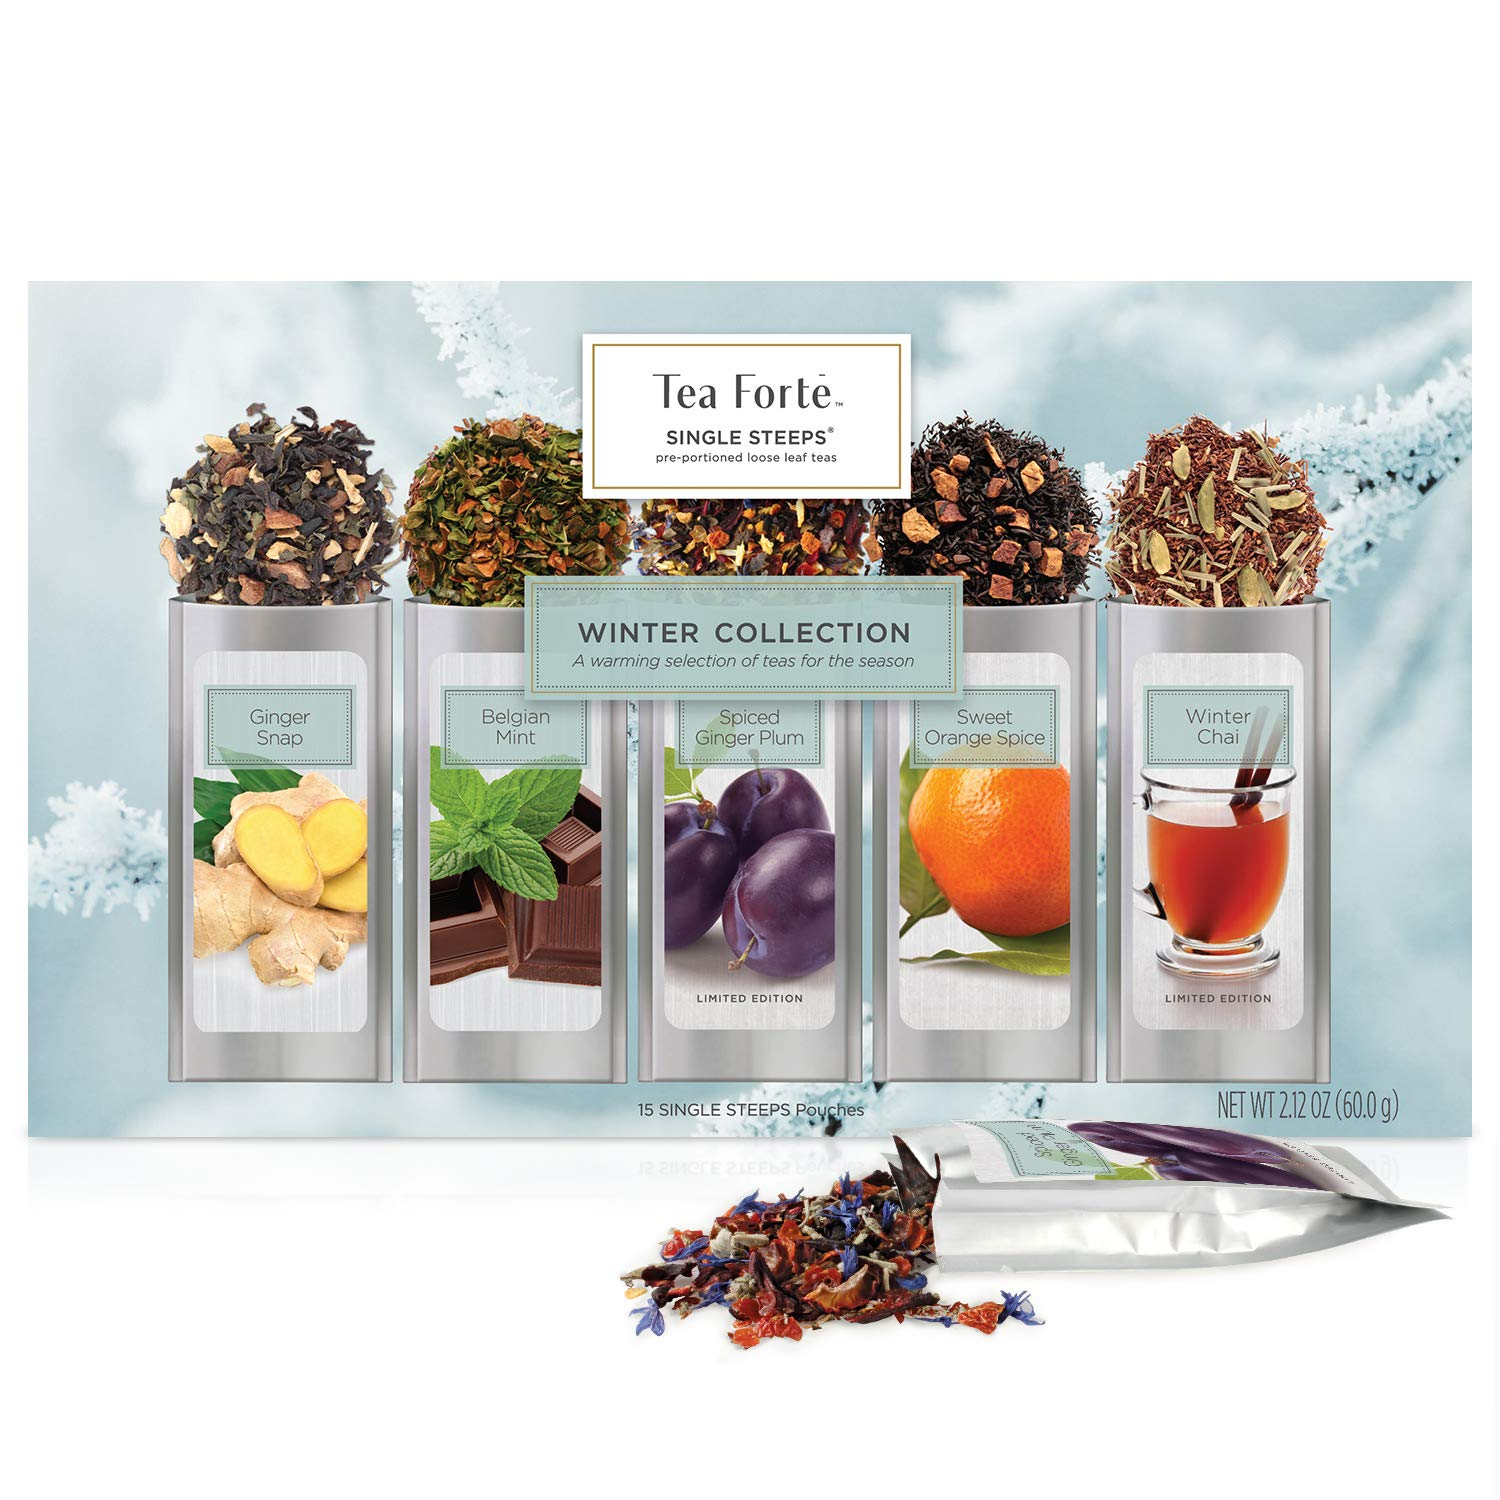 Tea Forte Single Steeps Winter Collection - Awarming selection of Teas for the season - Limited Edition - 15 Single Steeps Pouches